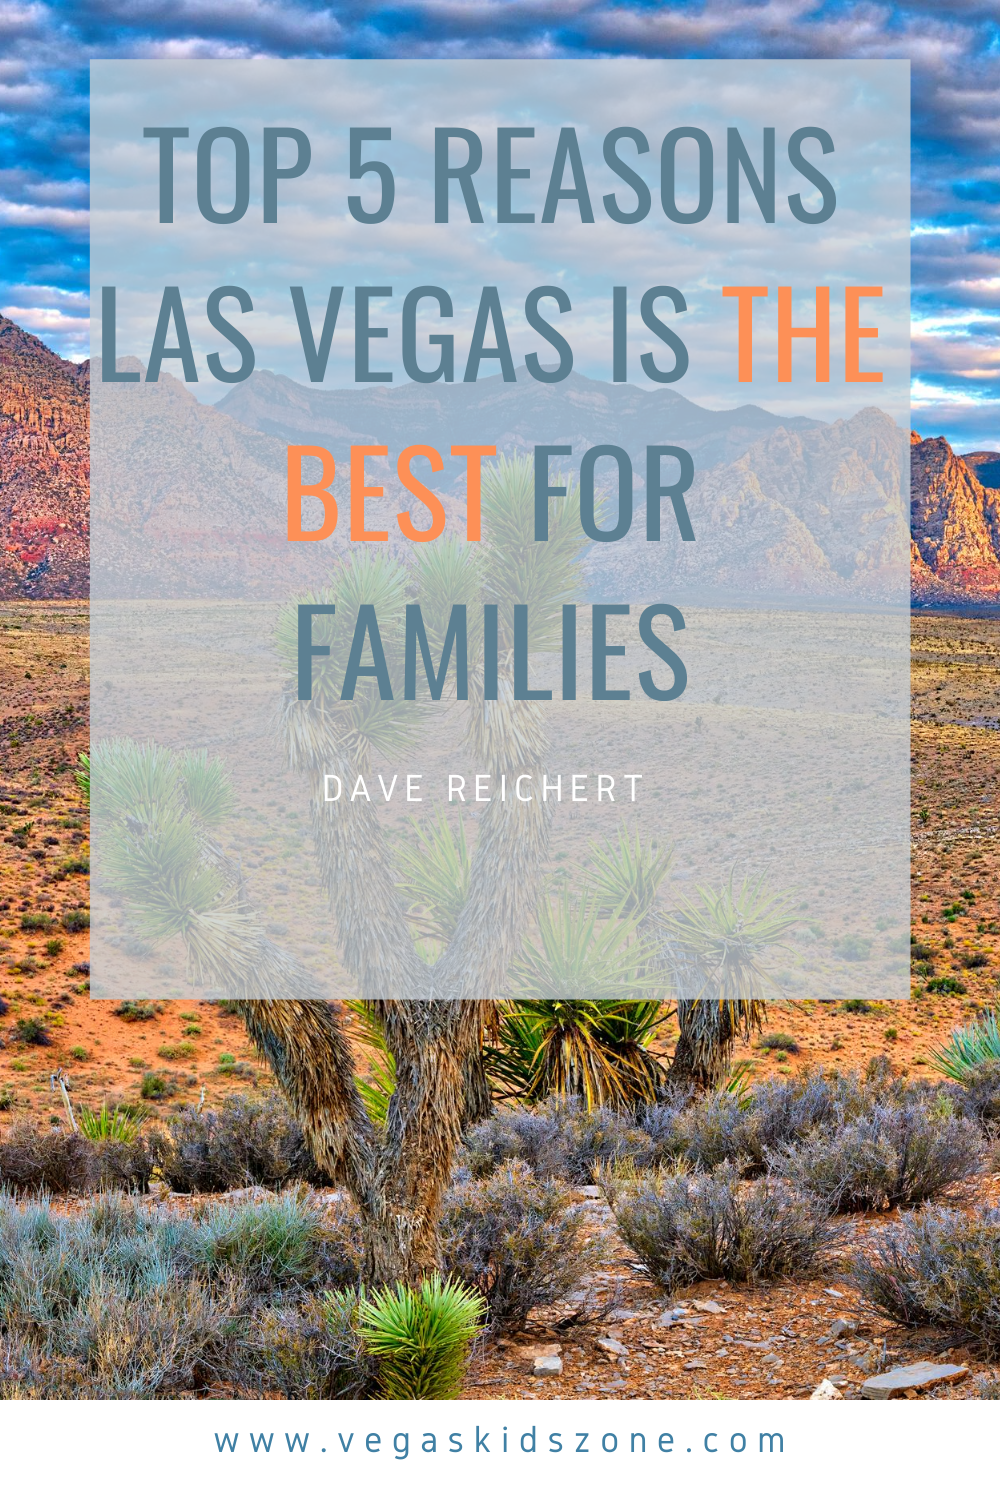 Real estate is booming in the family-friendly oasis of Las Vegas.